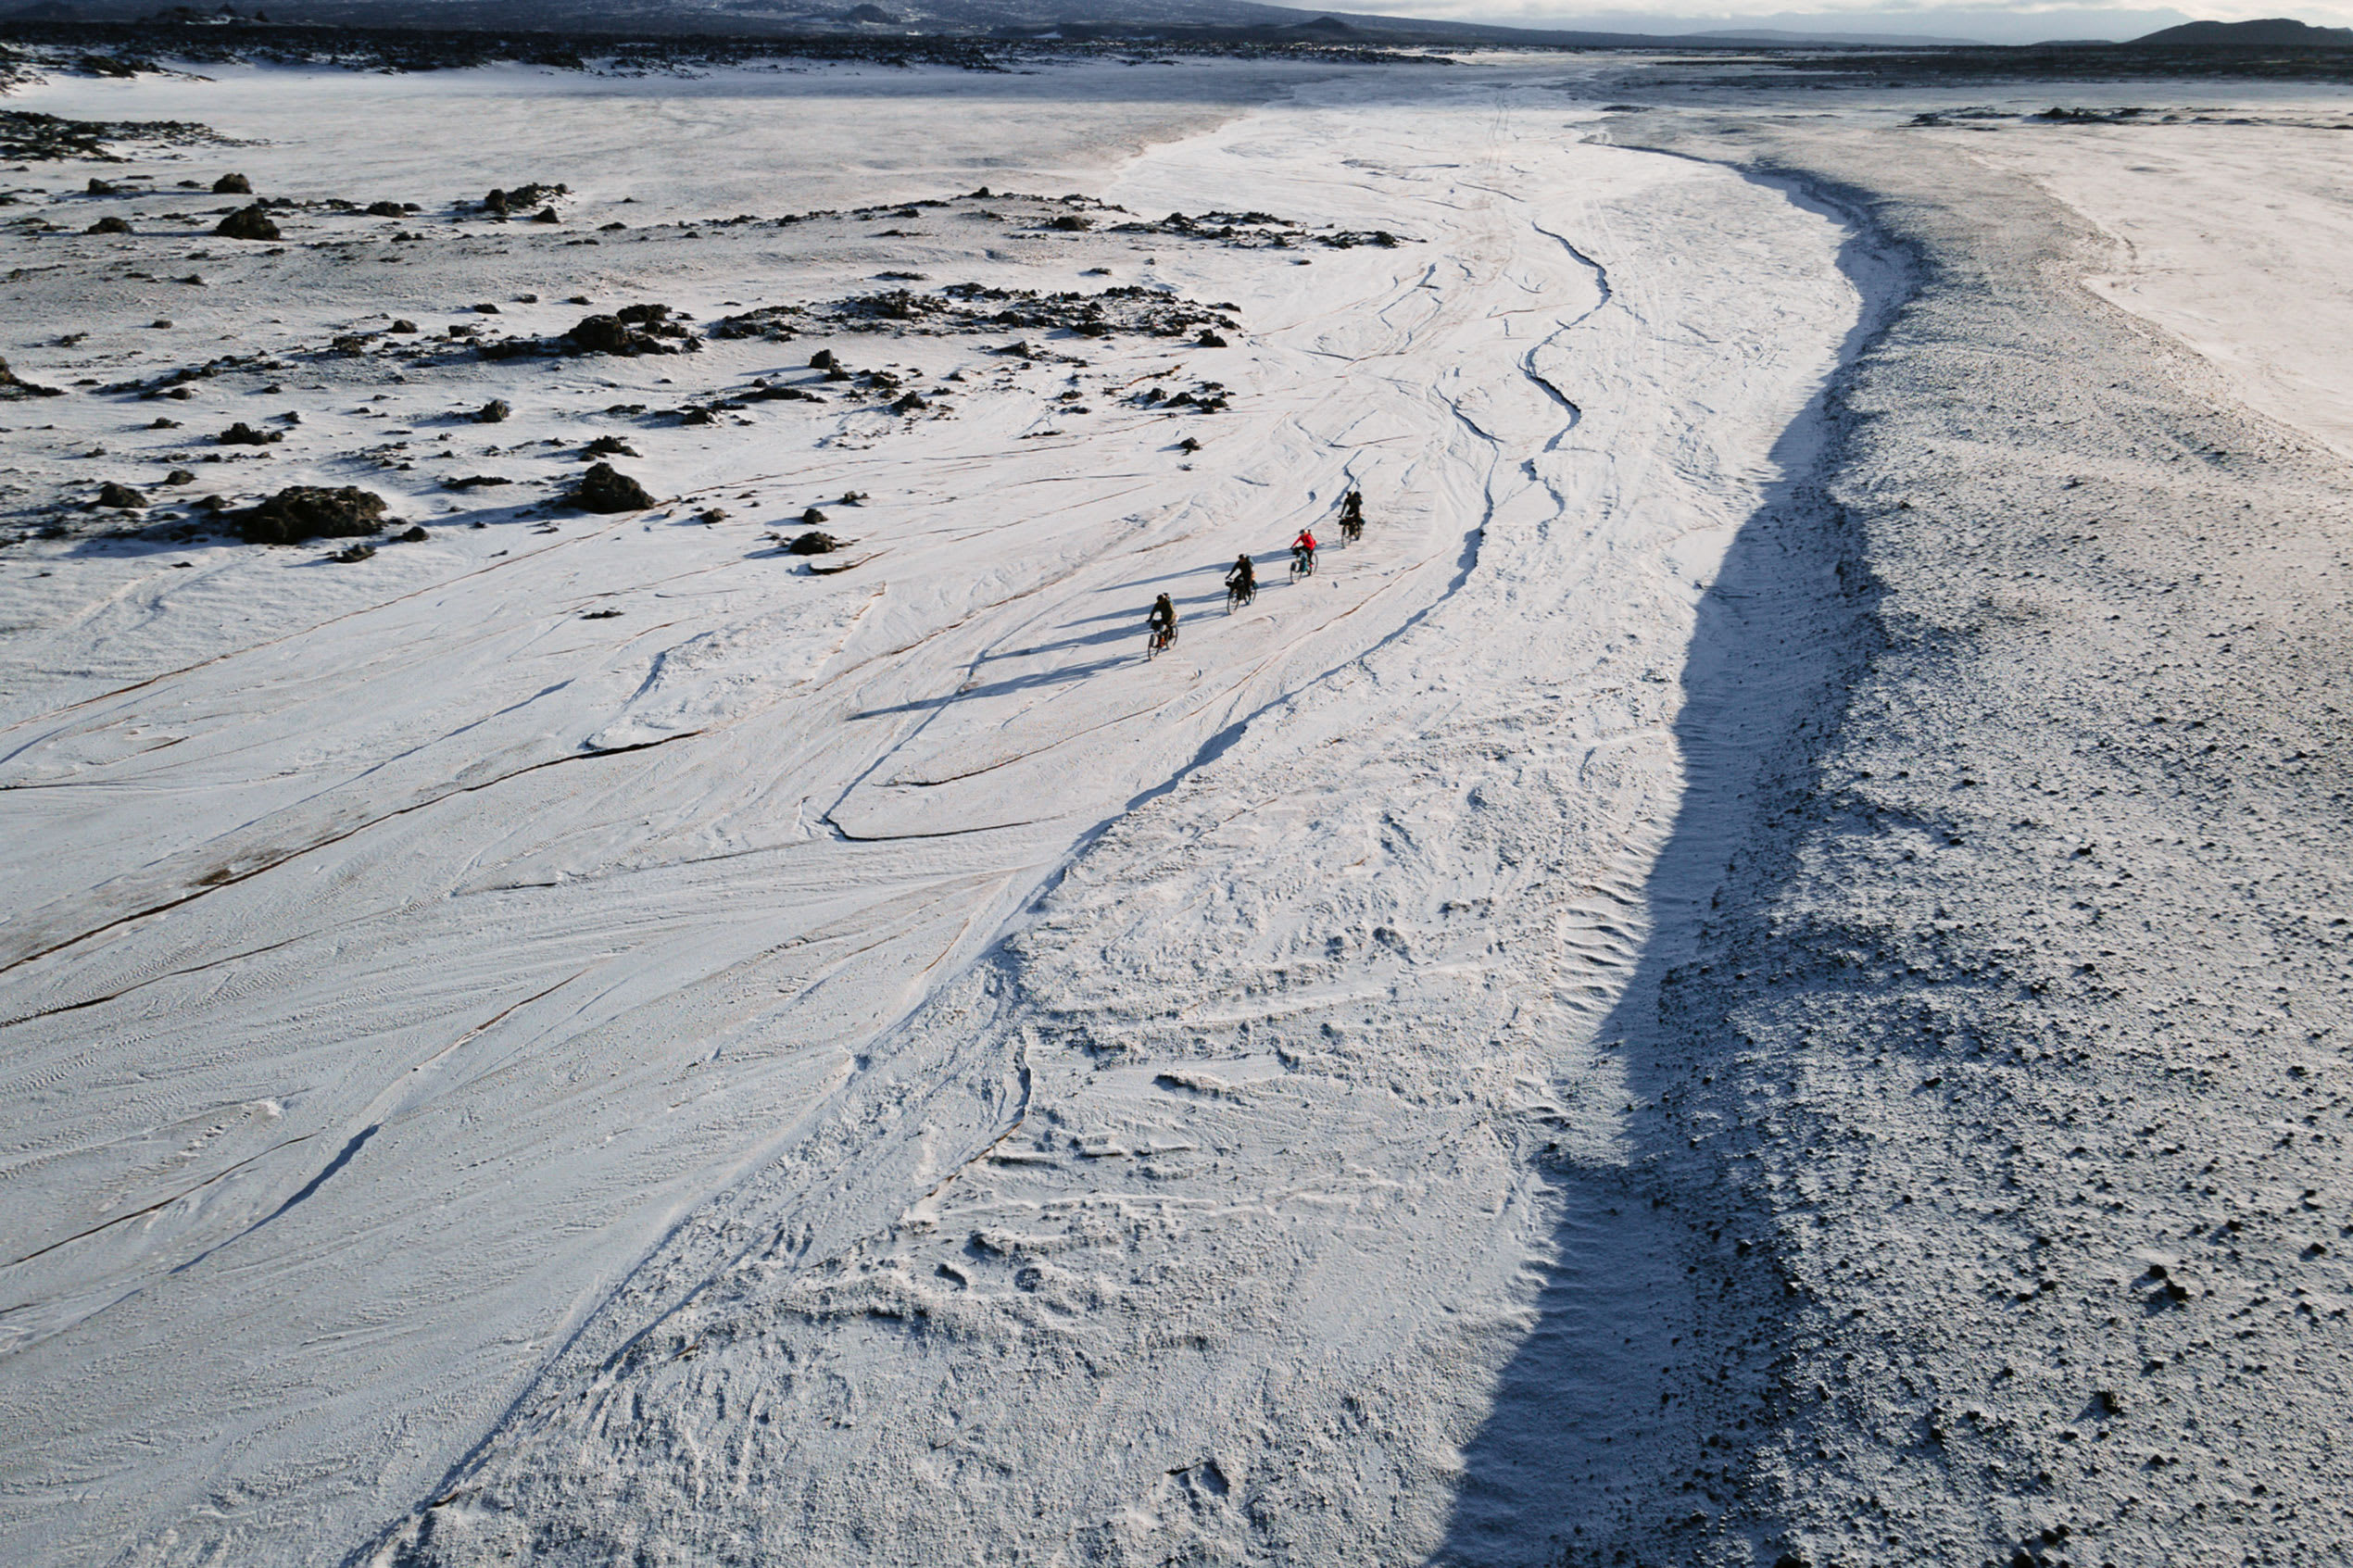 an overhead view of four bikepackers making their way through the snowy Icelandic landscape